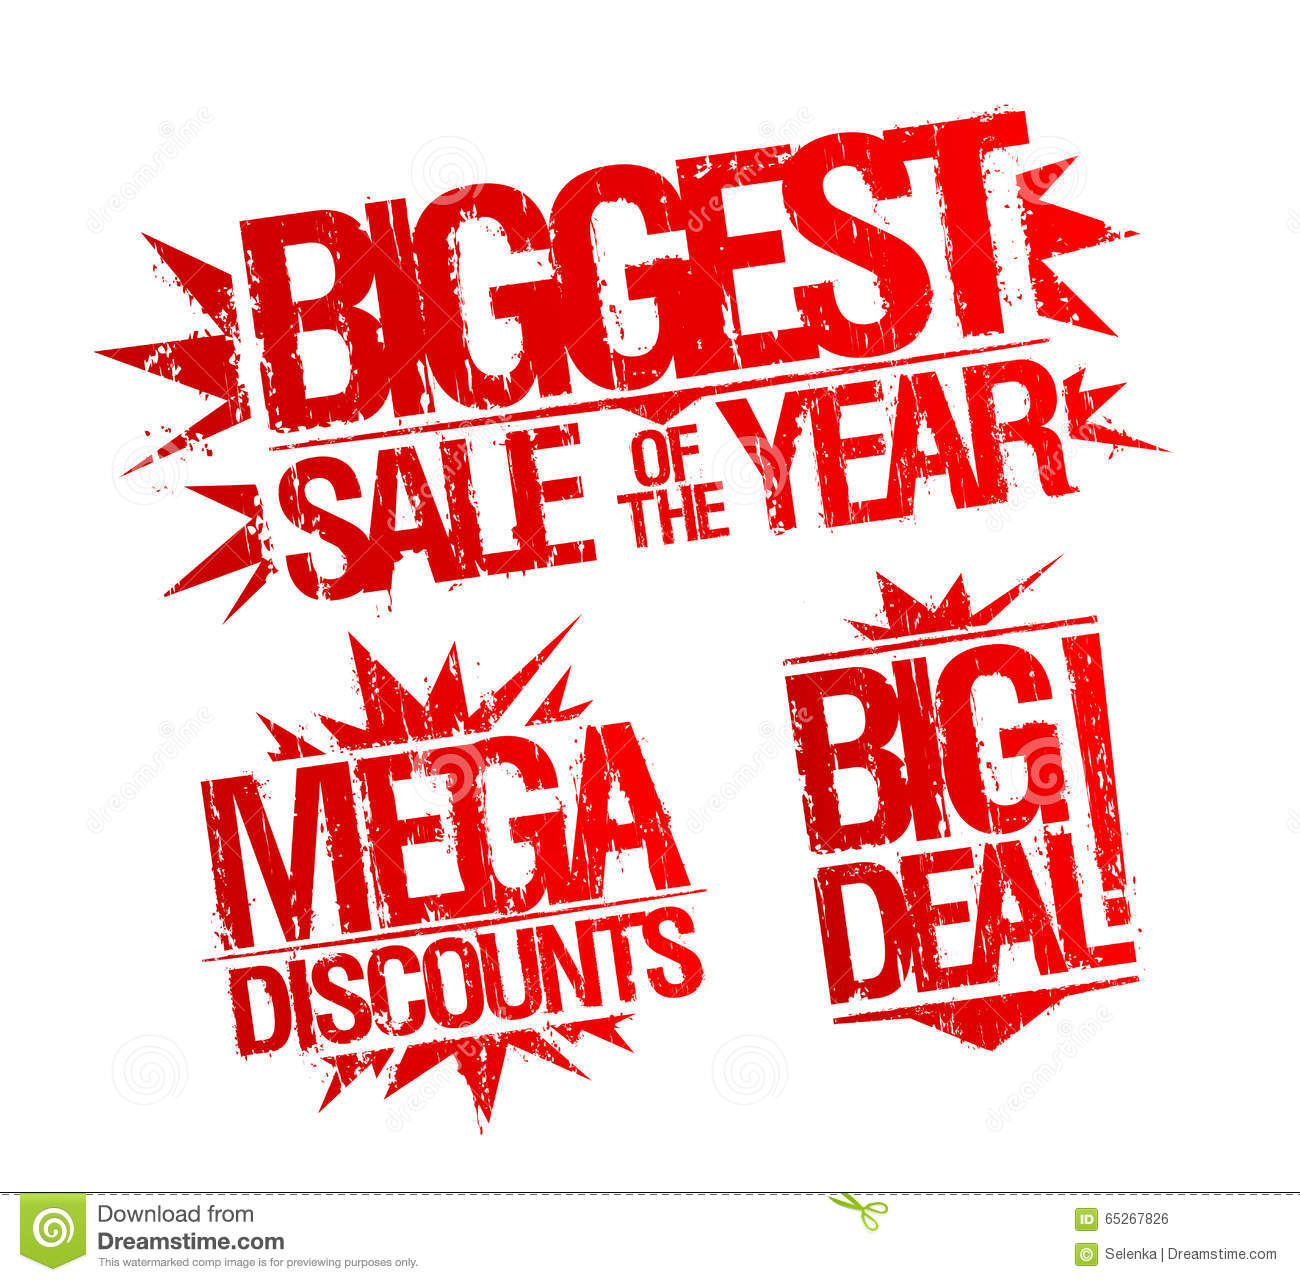 Discount Filters Coupon >> Biggest Sale Of The Year Stamp, Mega Discounts Stamp, Big Deal Stamp. Stock Vector ...